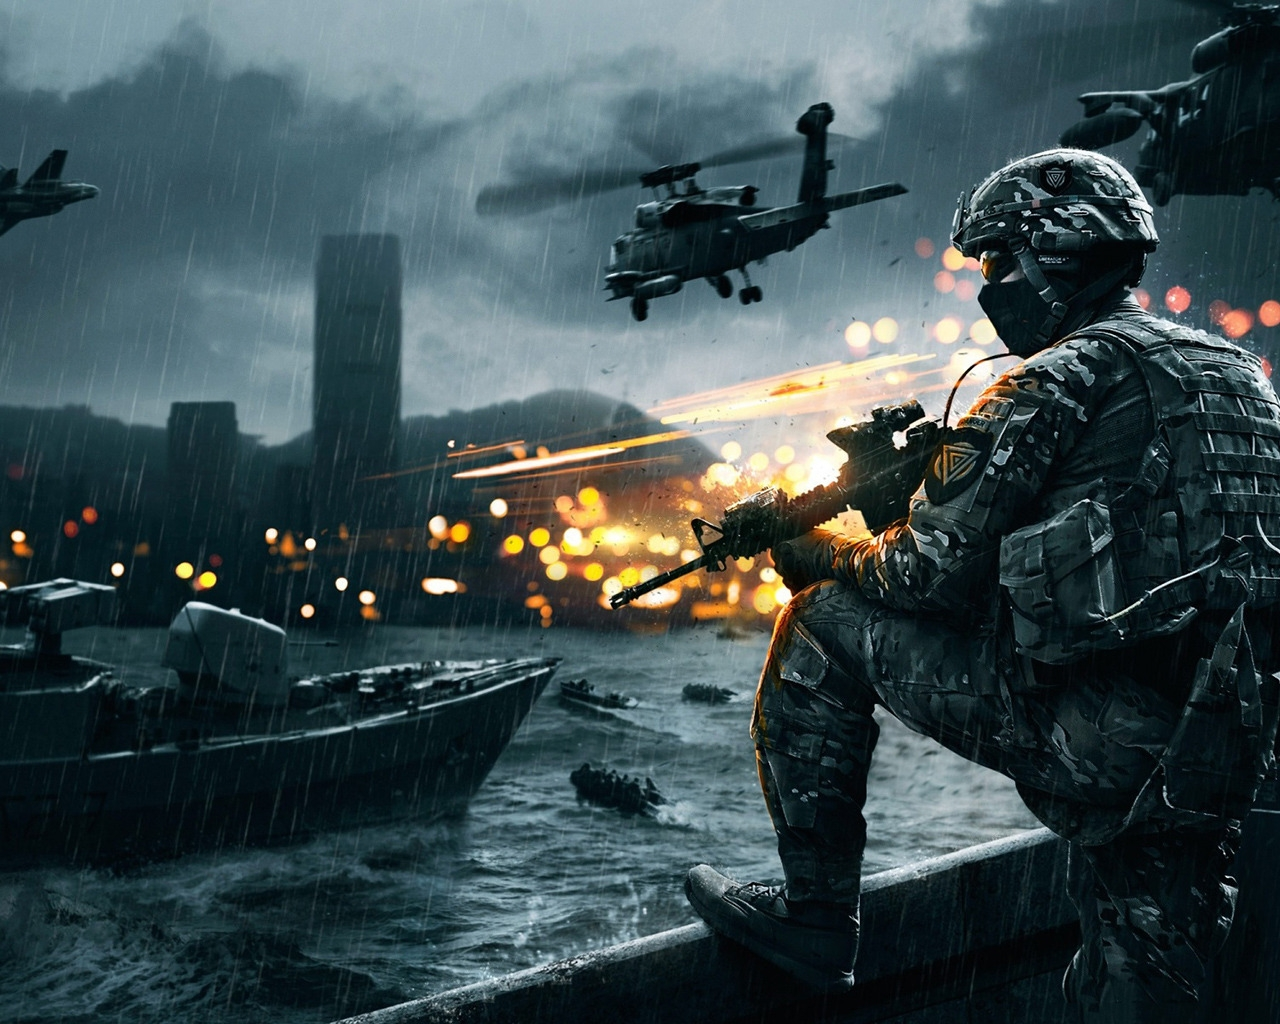 Battlefield 4 Siege of Shanghai for 1280 x 1024 resolution